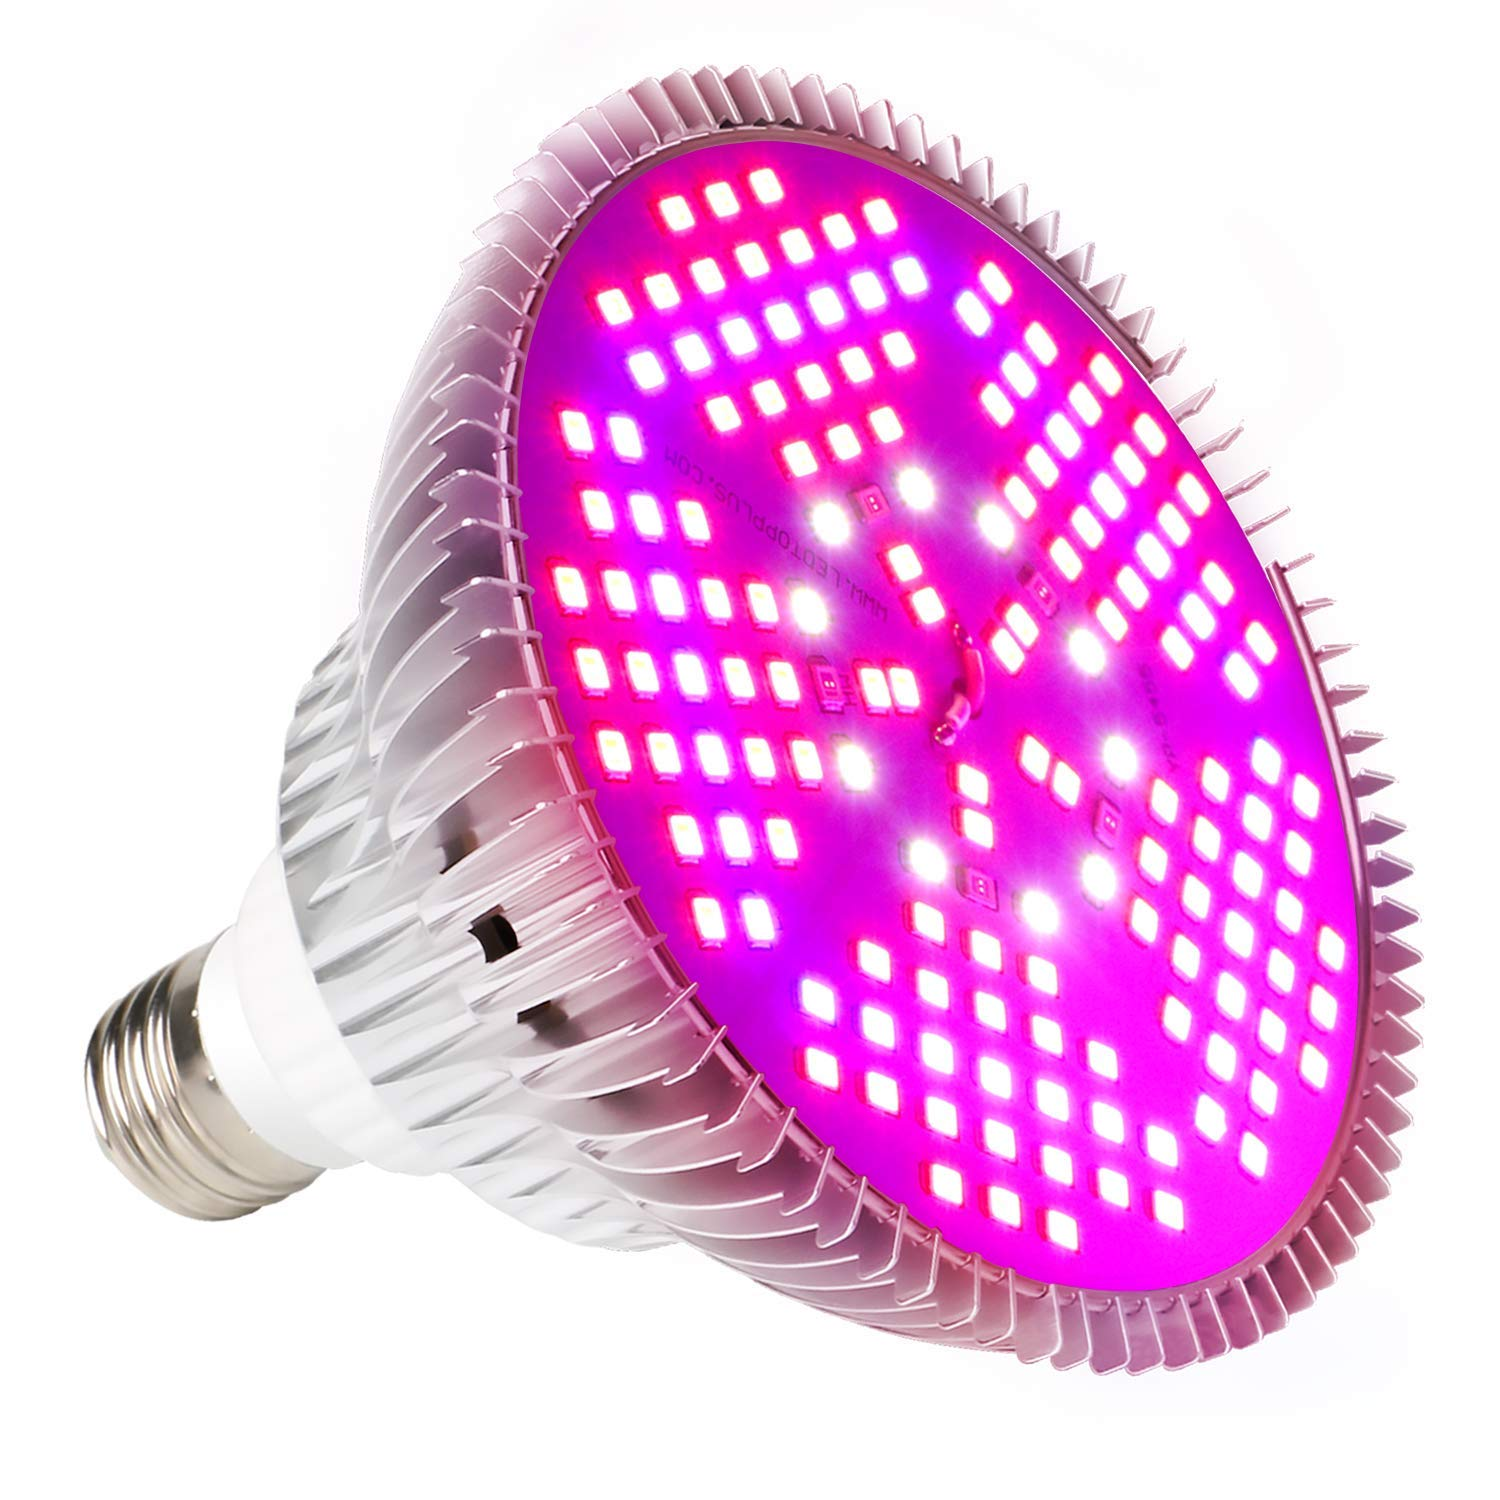 100W Led Grow Light Bulb, Full Spectrum Plant Lights for Indoor Plants Hydroponics, Flowers, Vegetables, (E26/E27 150LEDs) by MIYA